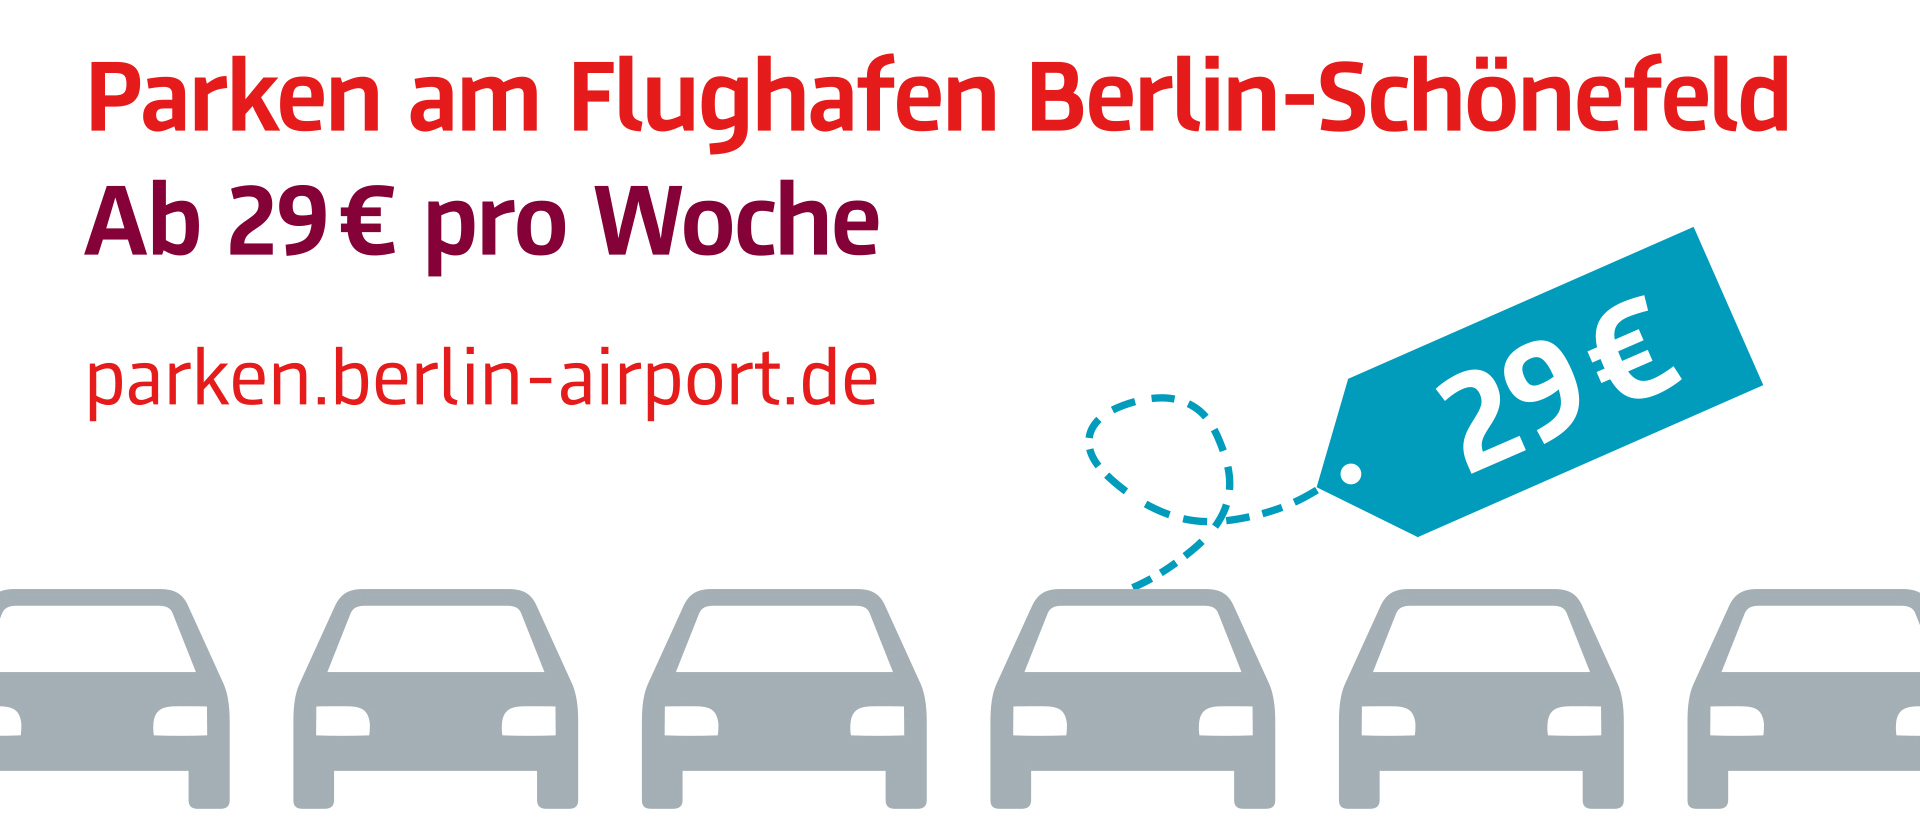 Book a parking space for SXF airport online